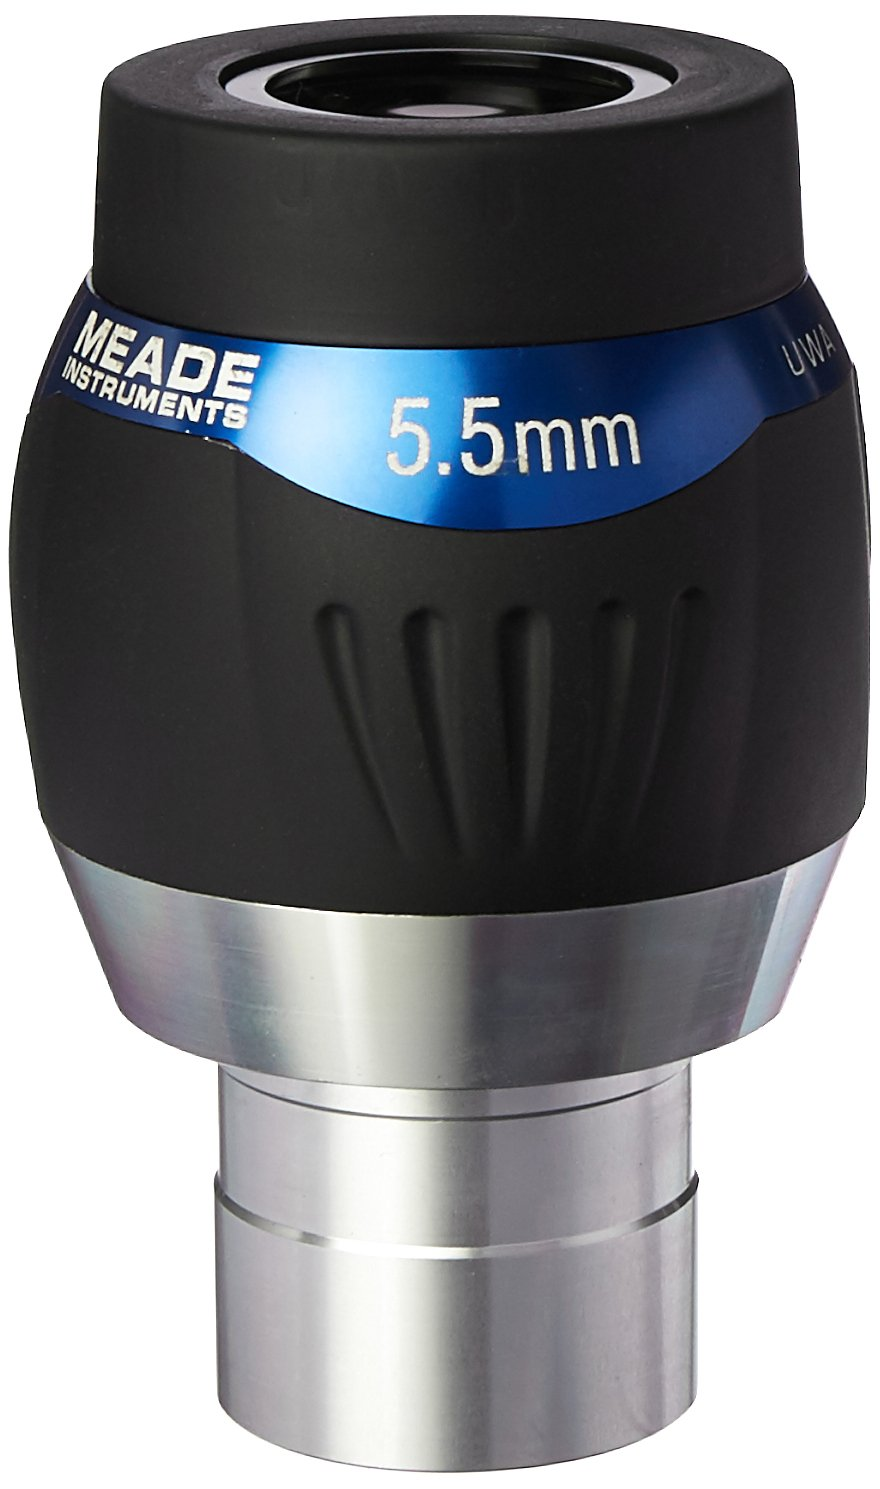 Meade Instruments 07740 Series 5000 1.25-Inch Xtreme Wide Angle 5.5-Millimeter Eyepiece (Black) by Meade Instruments